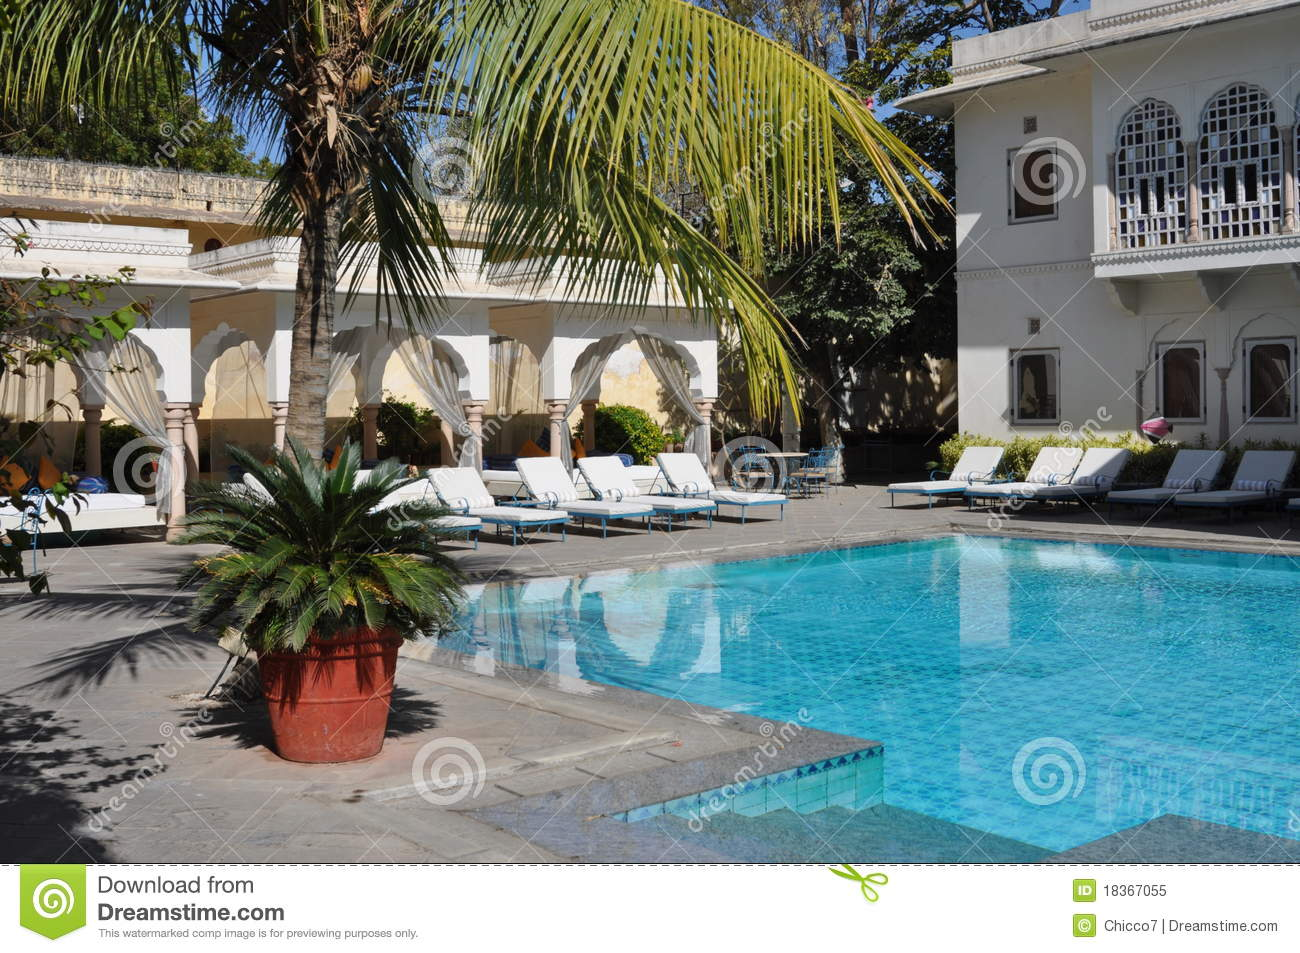 Luxury Swimming Pool In An Hotel In India Royalty Free Stock Photo Image 18367055